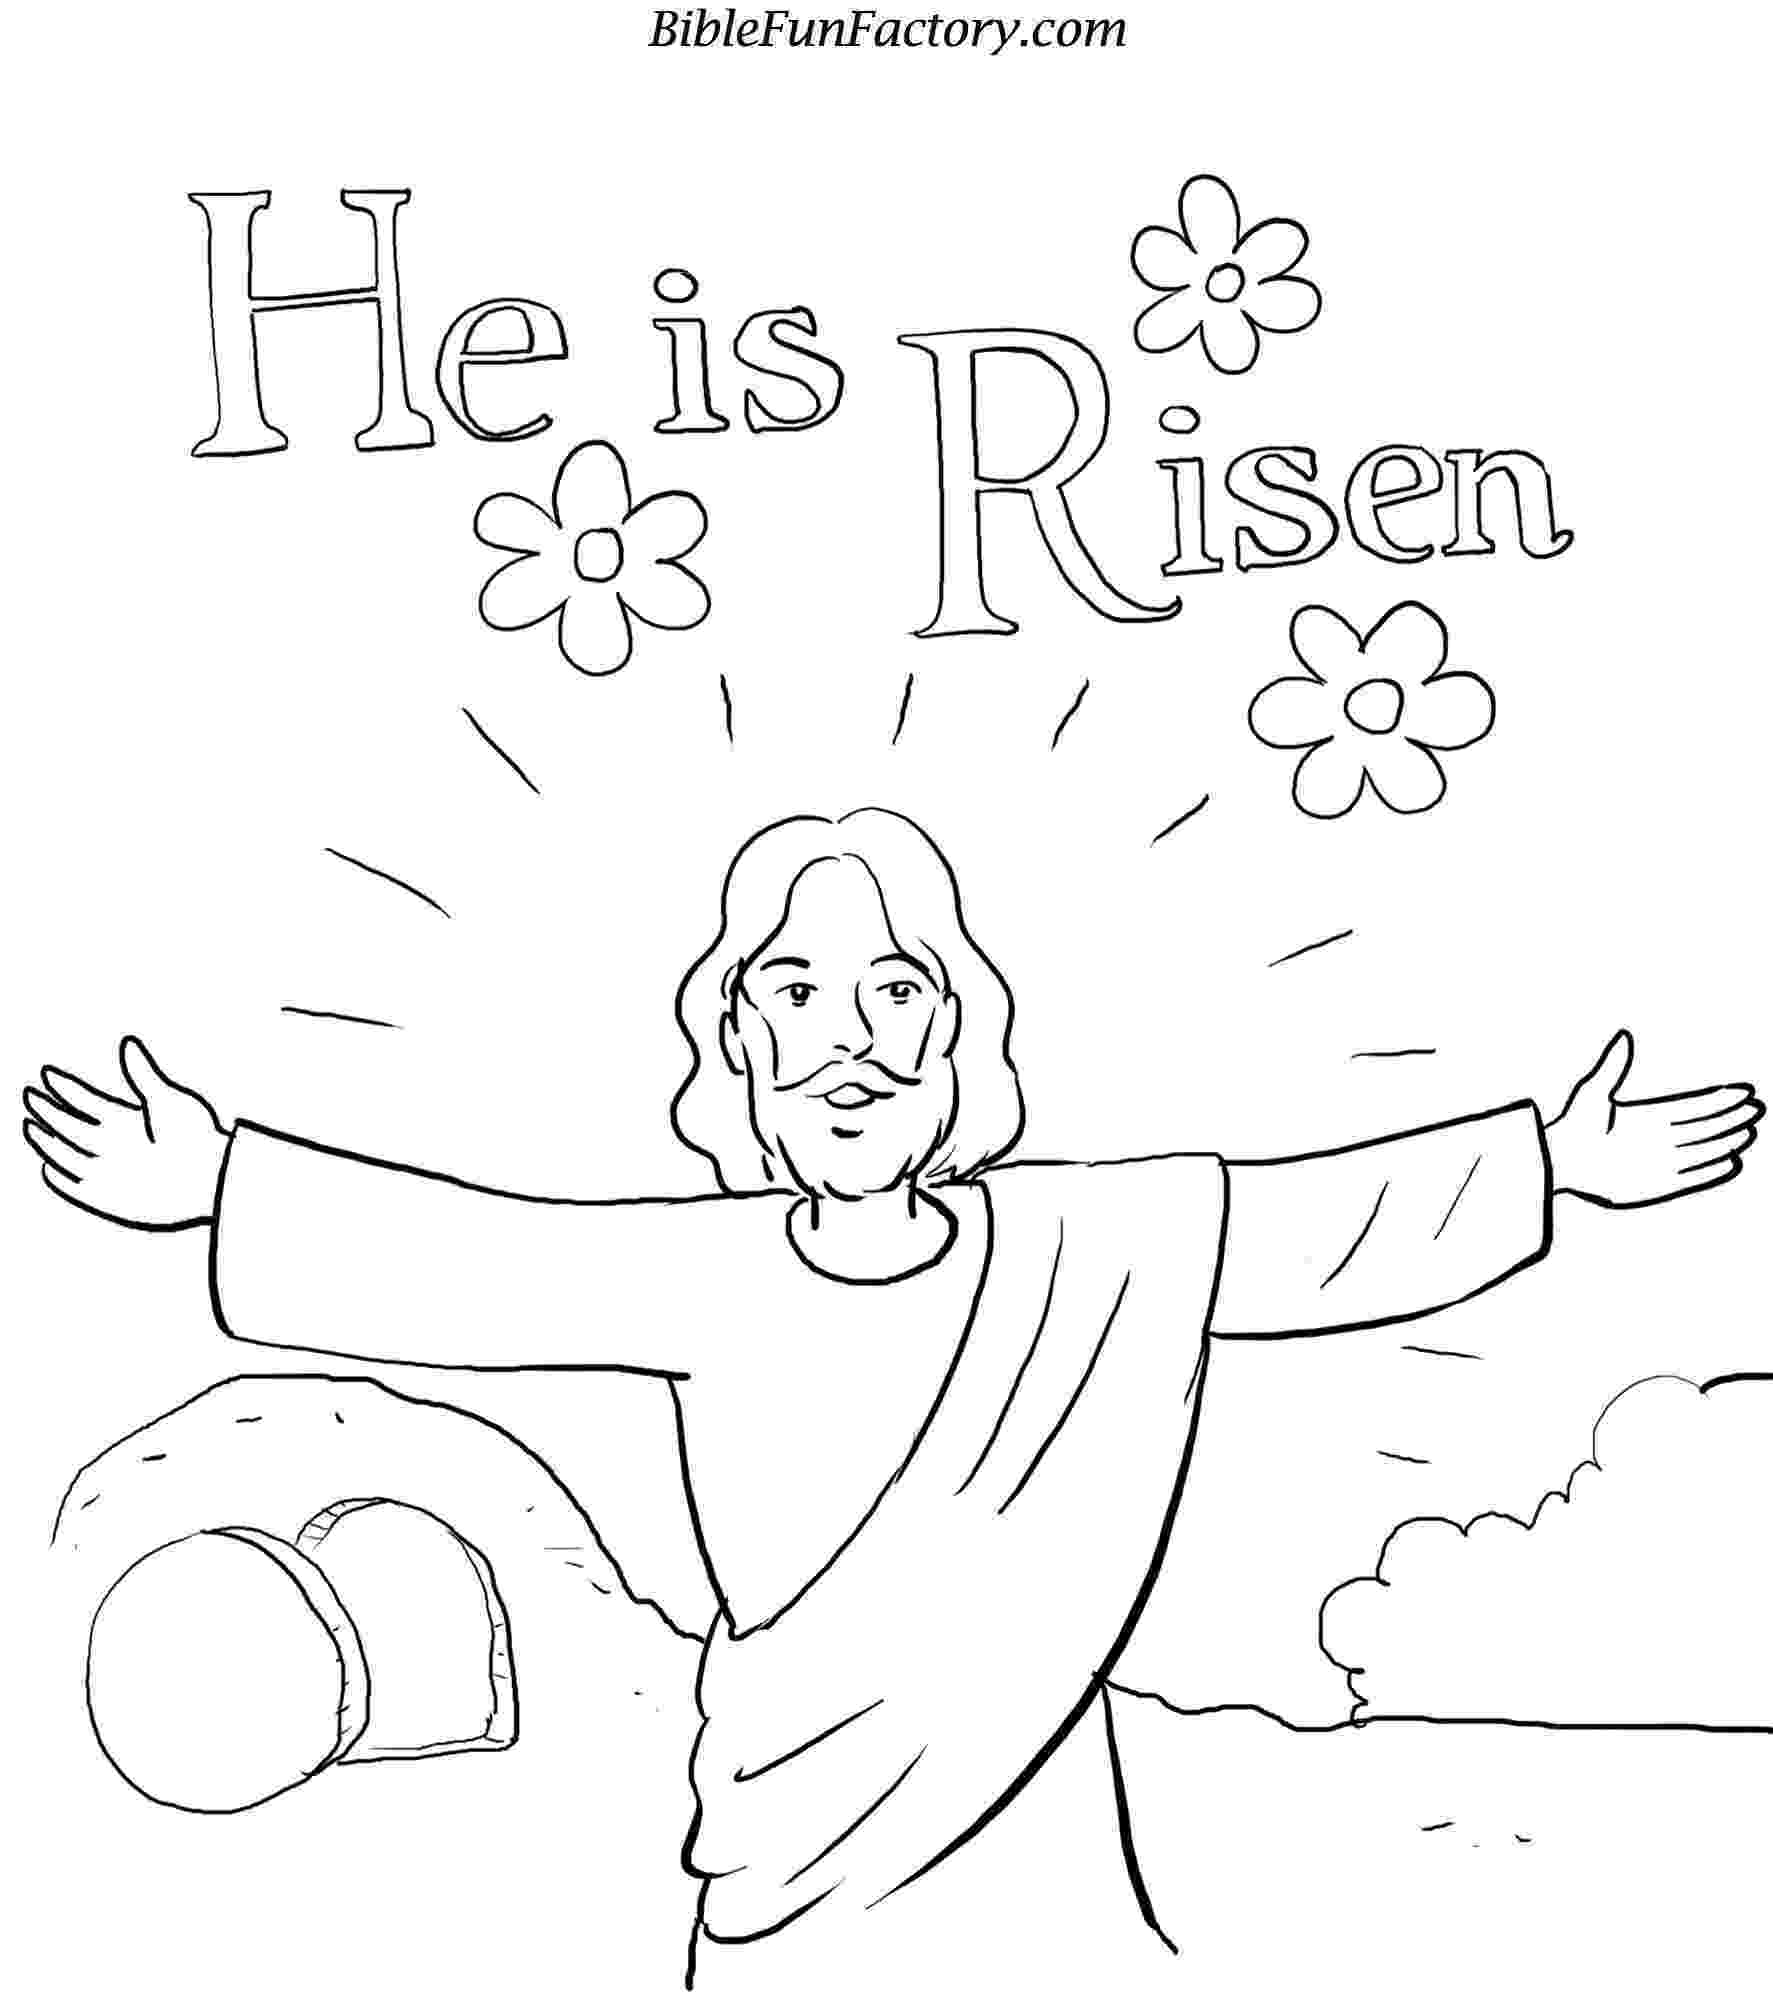 easter coloring sheets free printable christian free printable easter coloring pages religious coloring home coloring printable sheets free easter christian